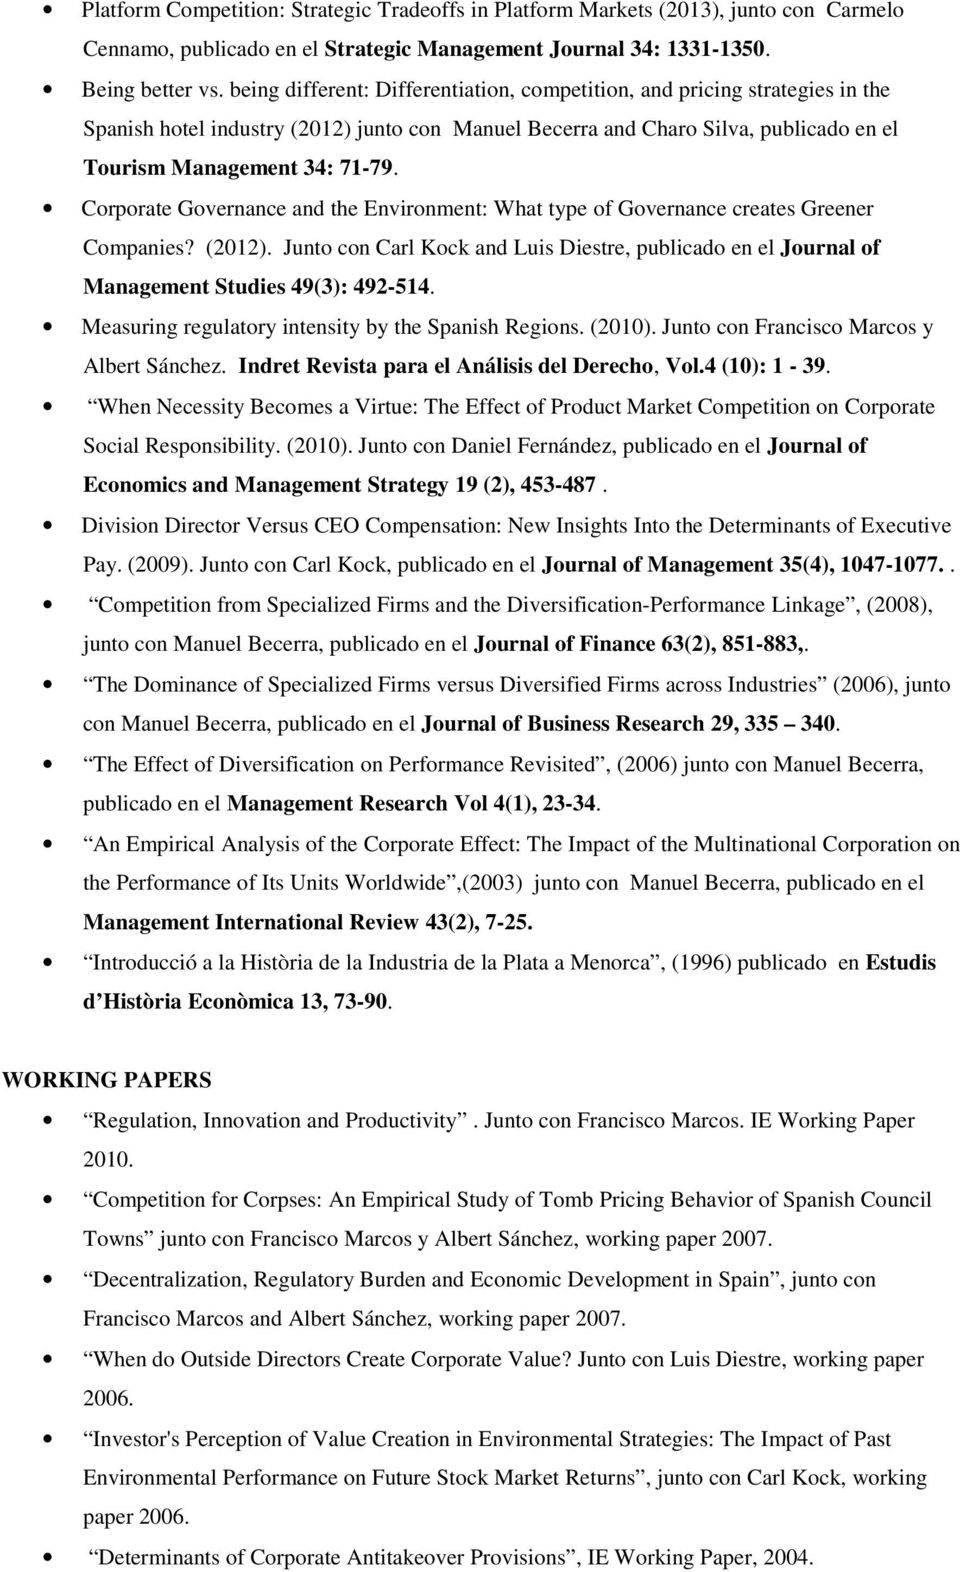 Corporate Governance and the Environment: What type of Governance creates Greener Companies? (2012). Junto con Carl Kock and Luis Diestre, publicado en el Journal of Management Studies 49(3): 492-514.